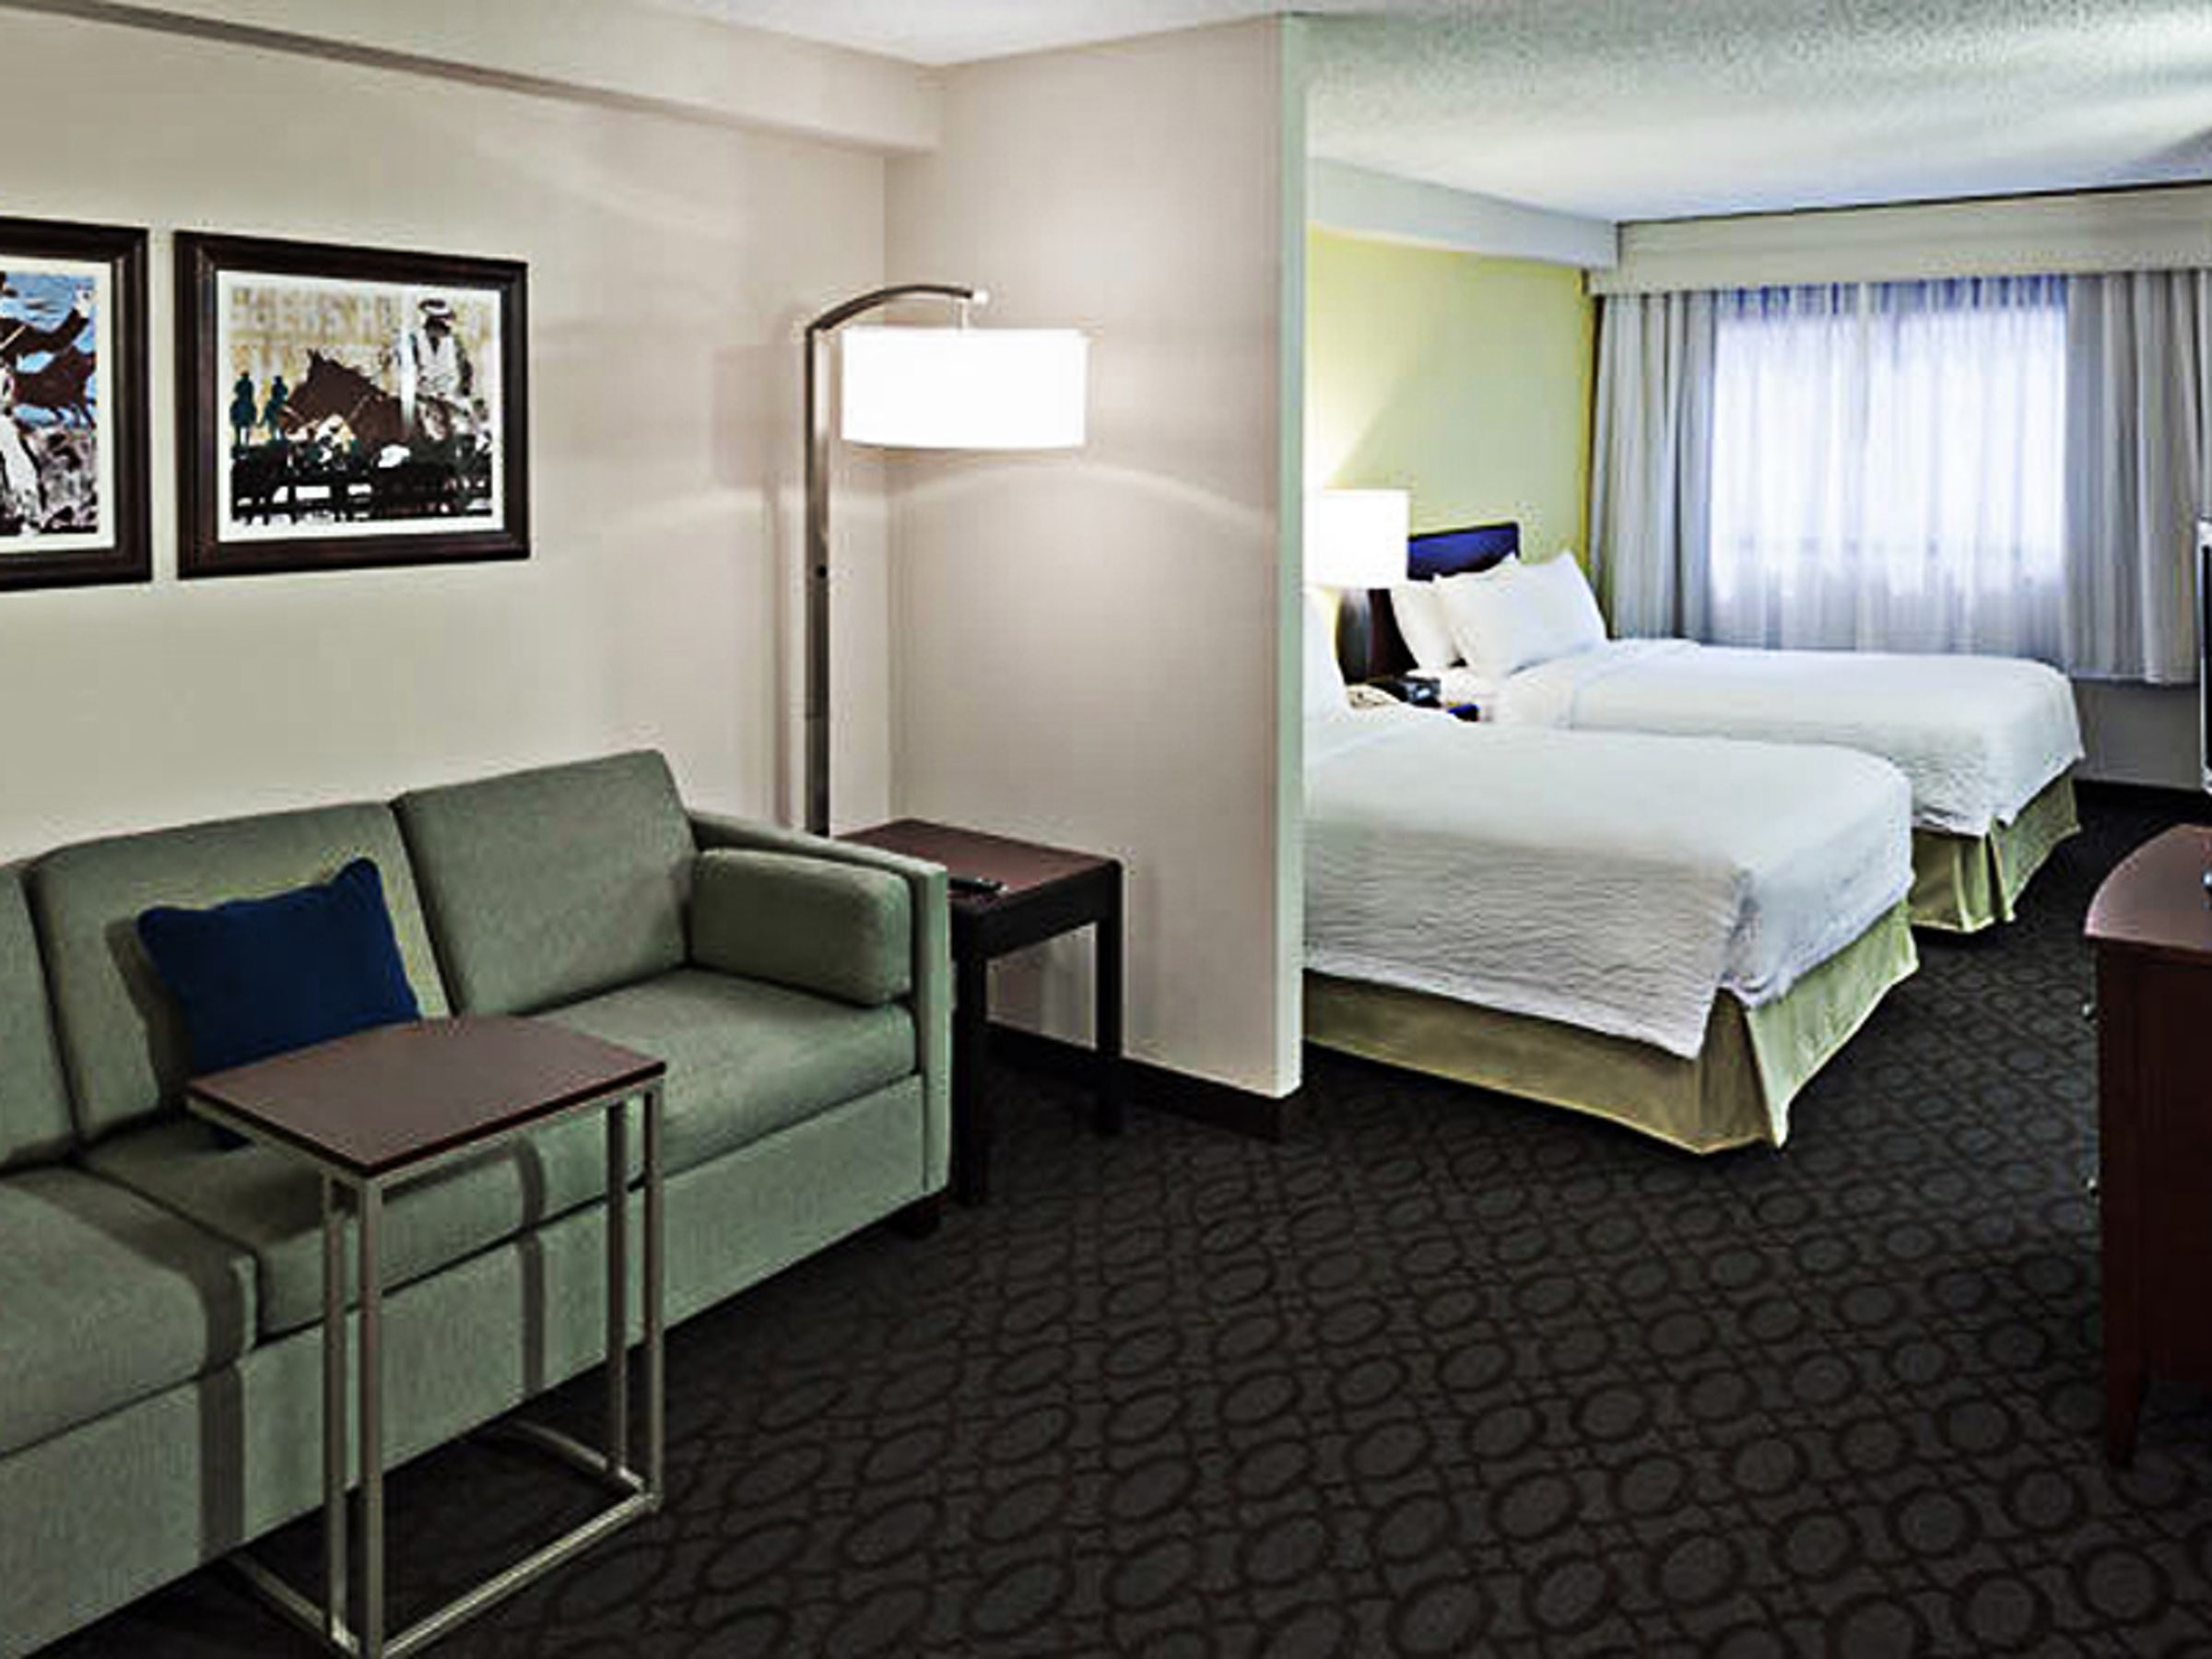 Springhill Suites by Marriott Dallas Downtown/West End in Beyond Dallas